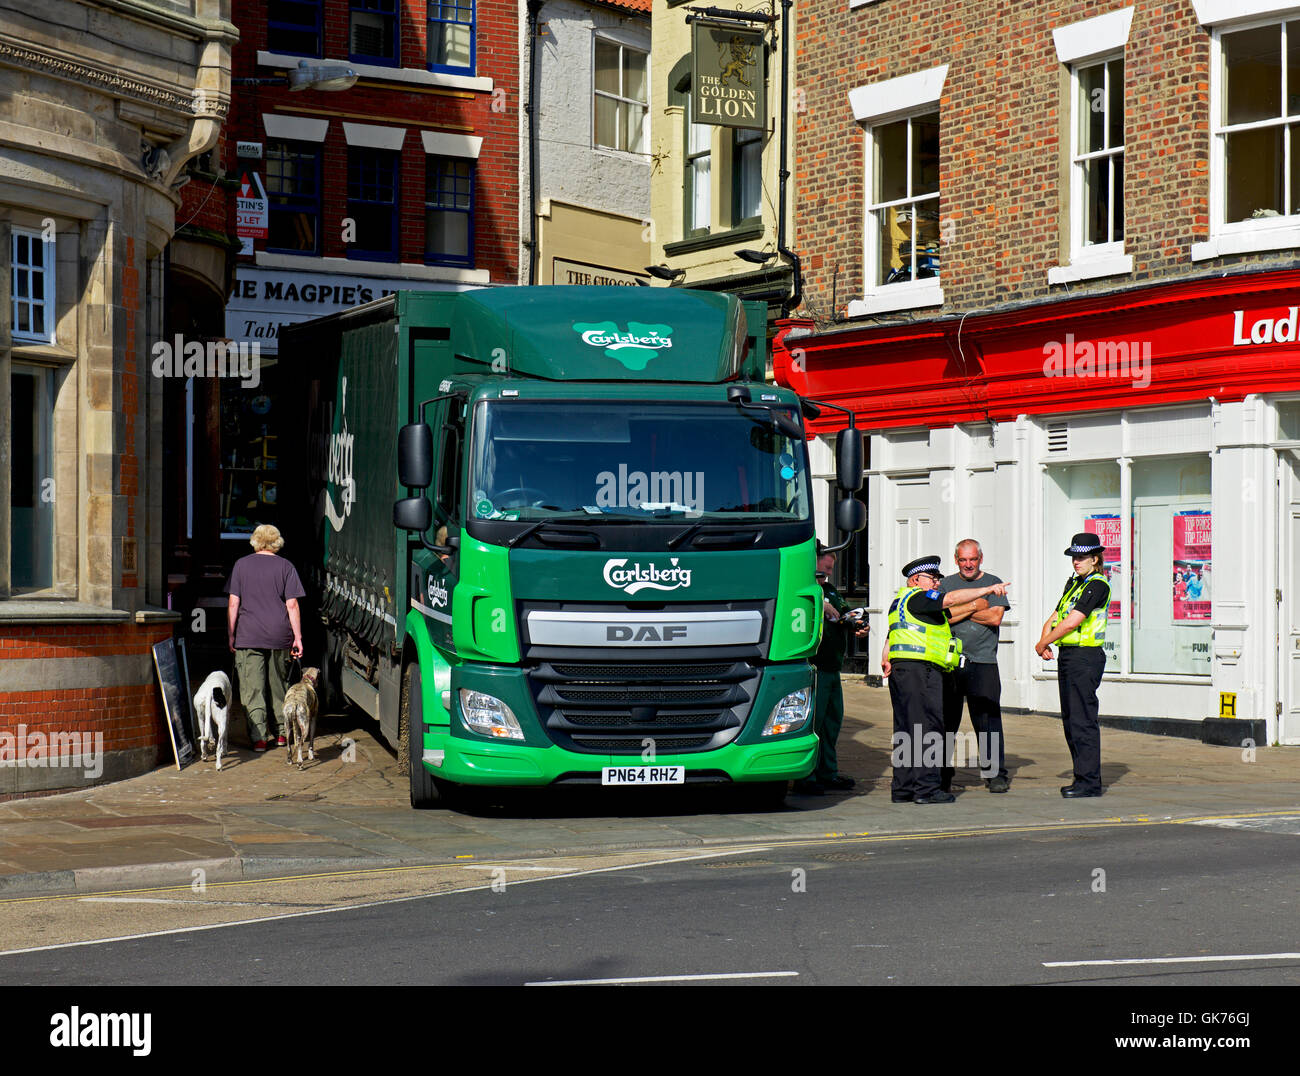 Carlsberg lorry parked in Whitby, North Yorkshire, England UK - Stock Image